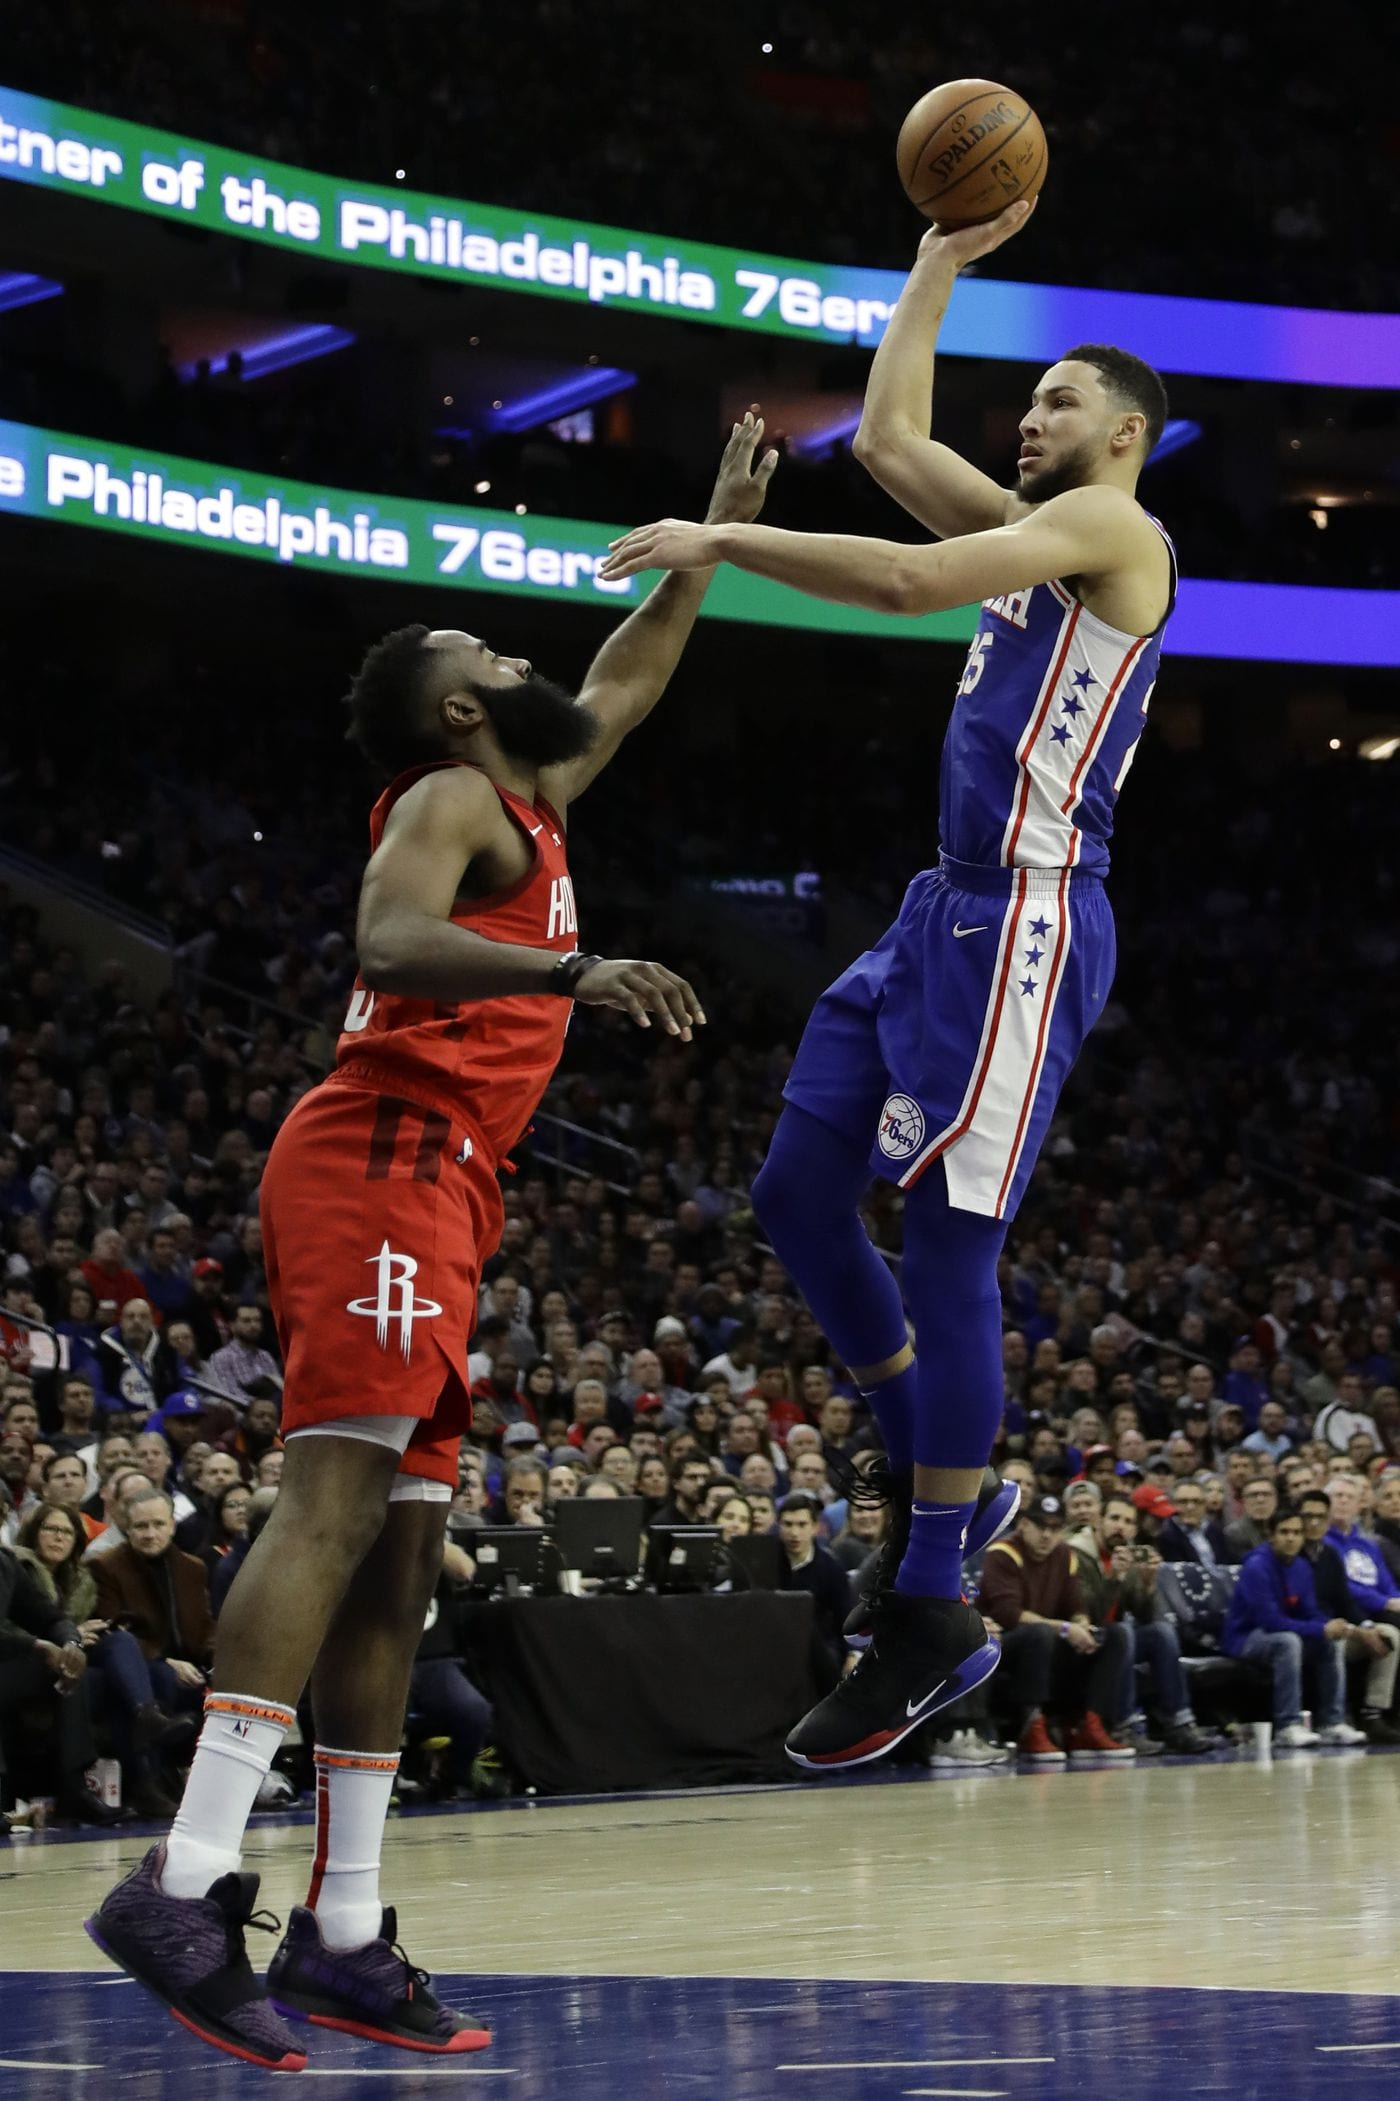 Do the Sixers need to trade Ben Simmons for Harden? via @PhillyWhat